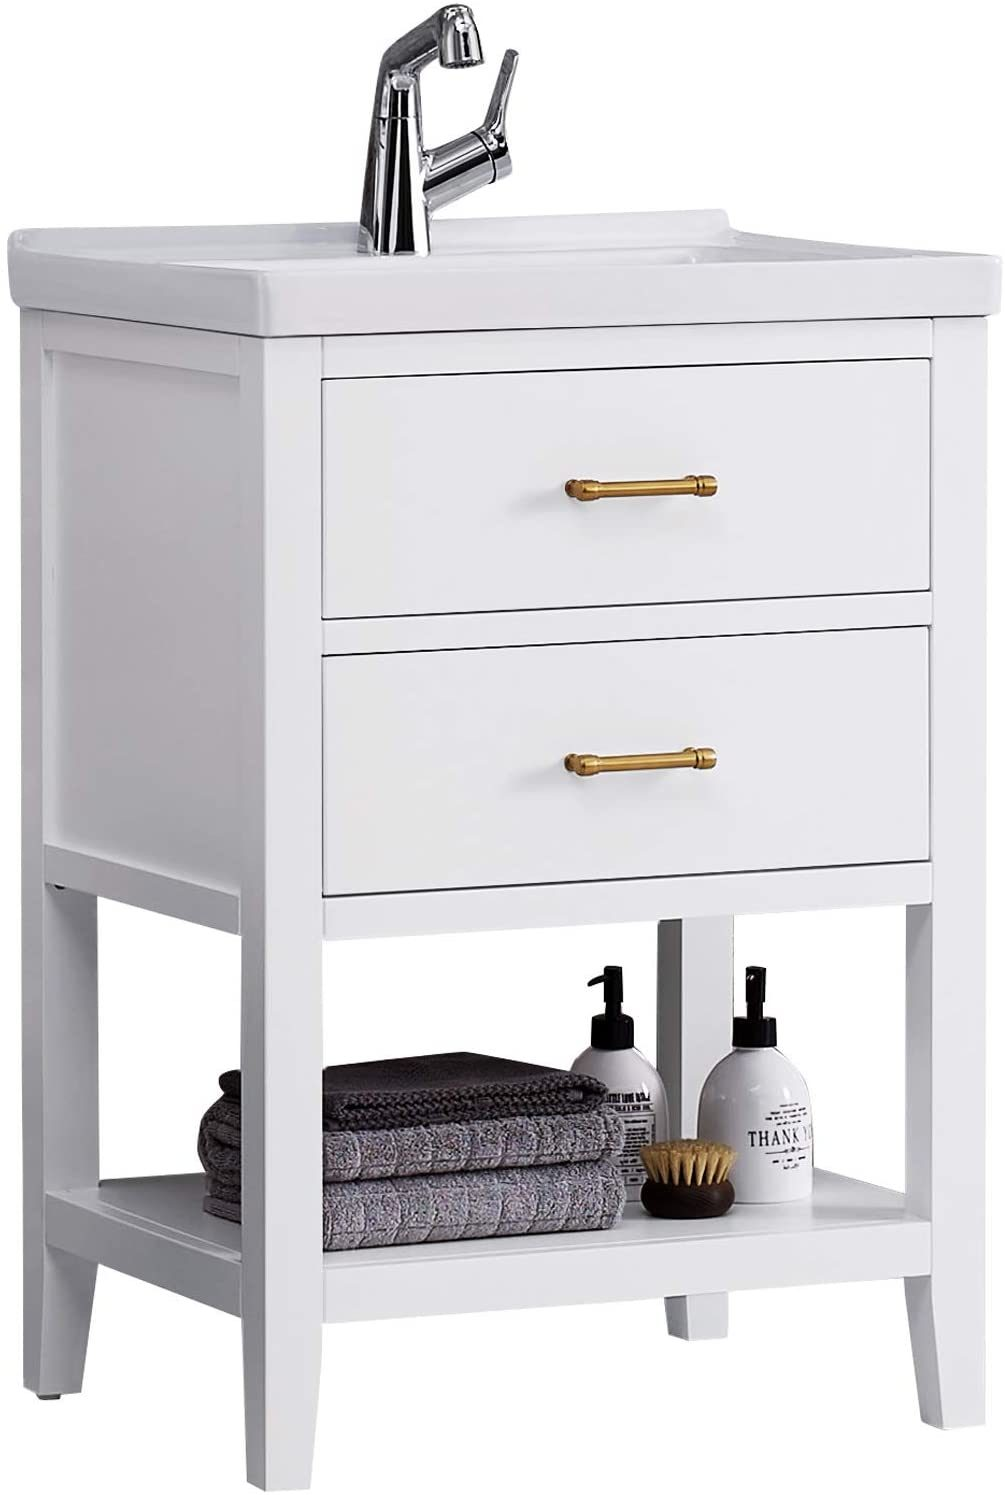 F&R Solid Wood Bathroom Vanity 24